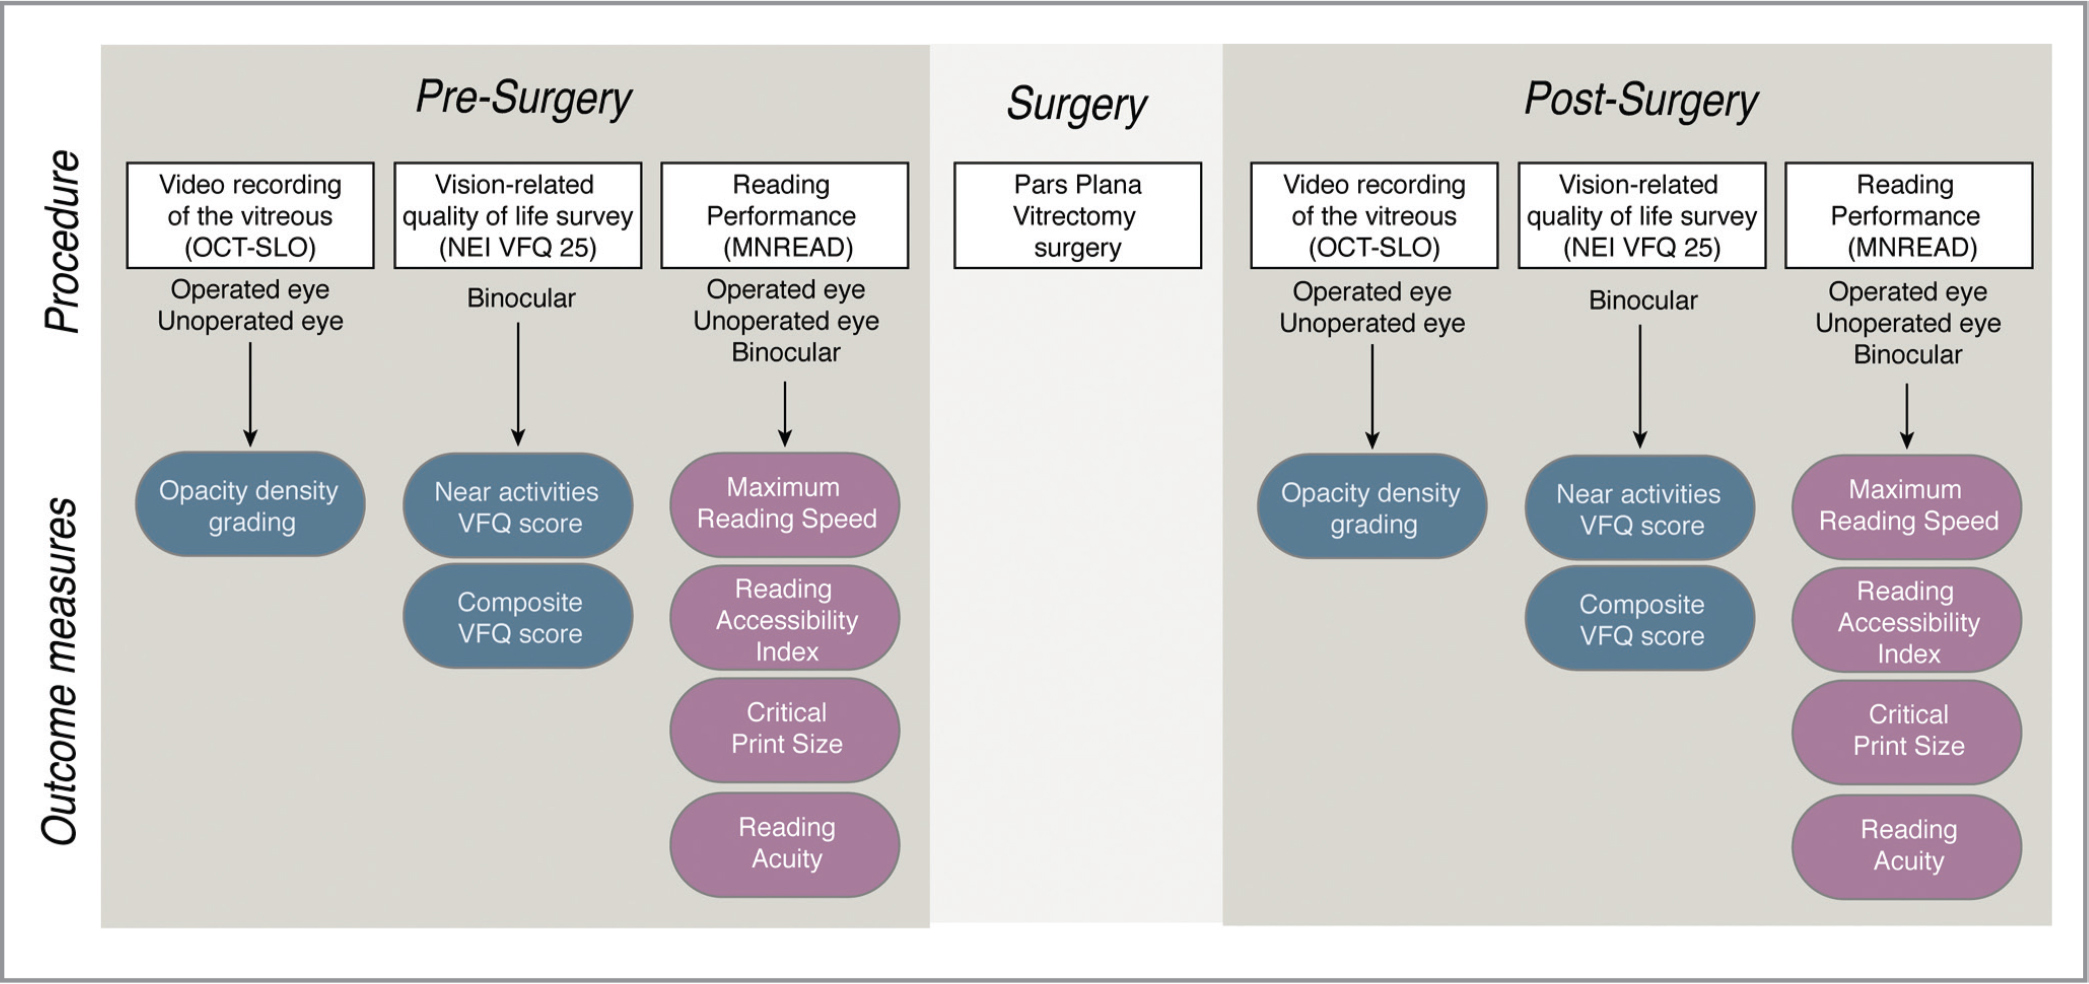 Protocol schematic showing the different test procedures along with the resulting outcome measures. Subjective measures are represented in blue; objective measures are represented in pink. OCT-SLO = optical coherence tomography scanning laser ophthalmoscope; NEI-VFQ = National Eye Institute Visual Function Questionnaire